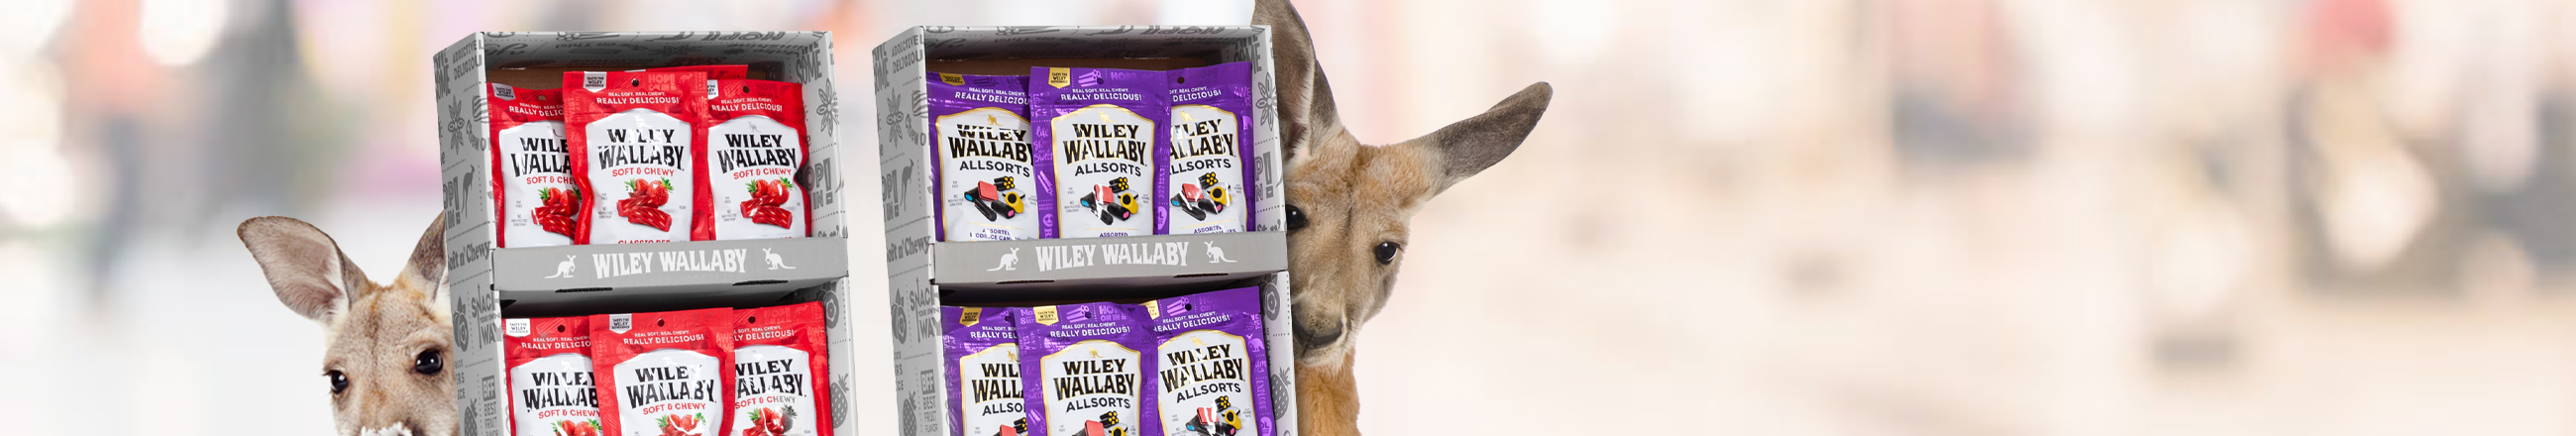 Wallaby_Banner